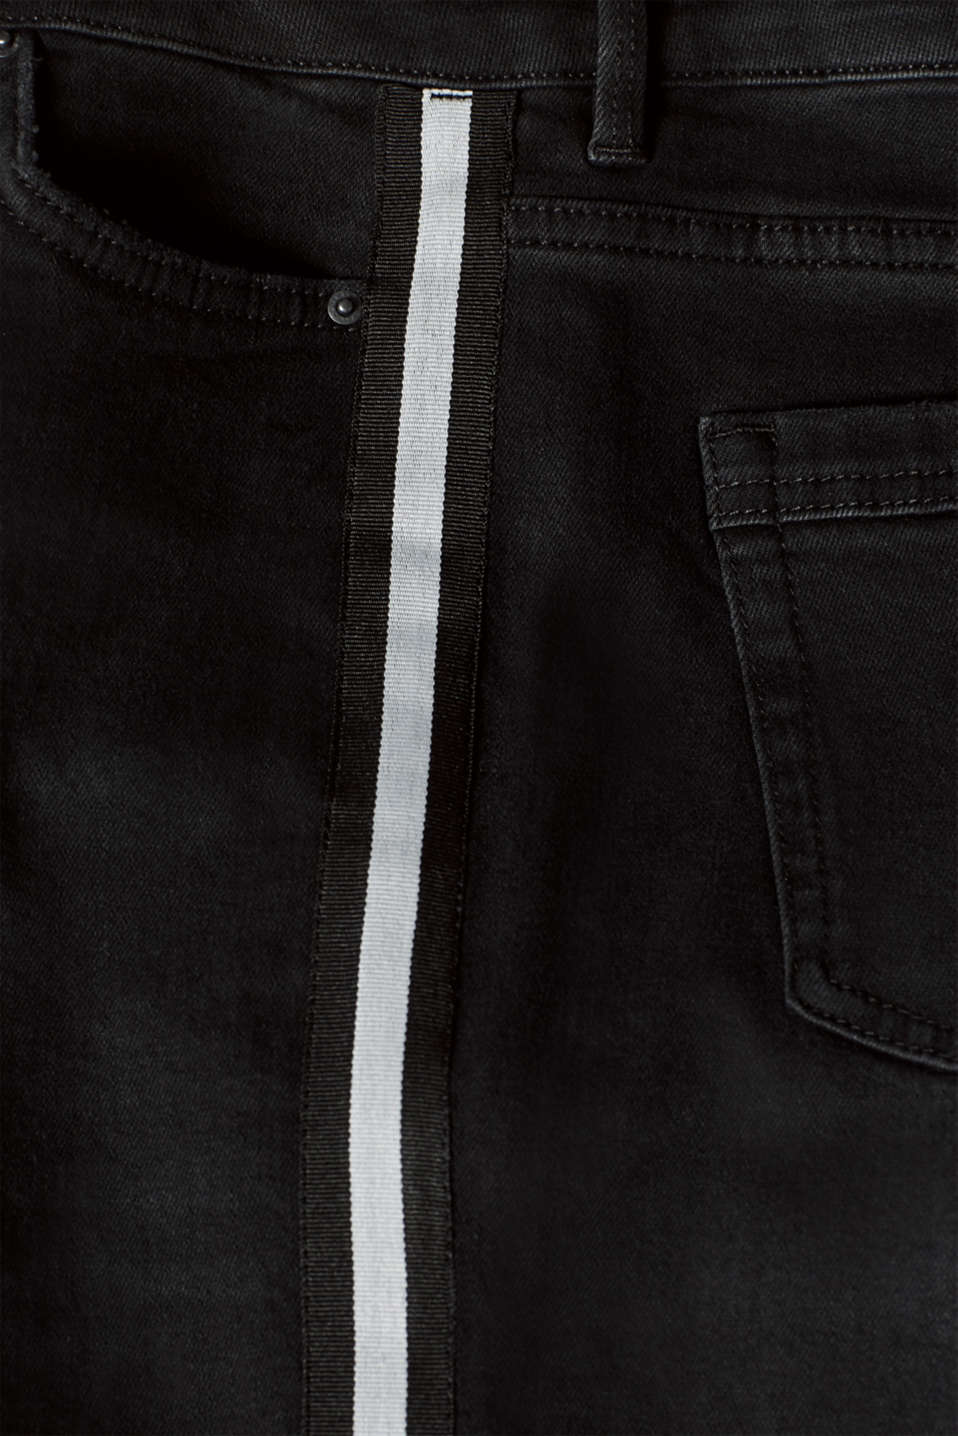 Pants denim, BLACK DARK WASH, detail image number 4